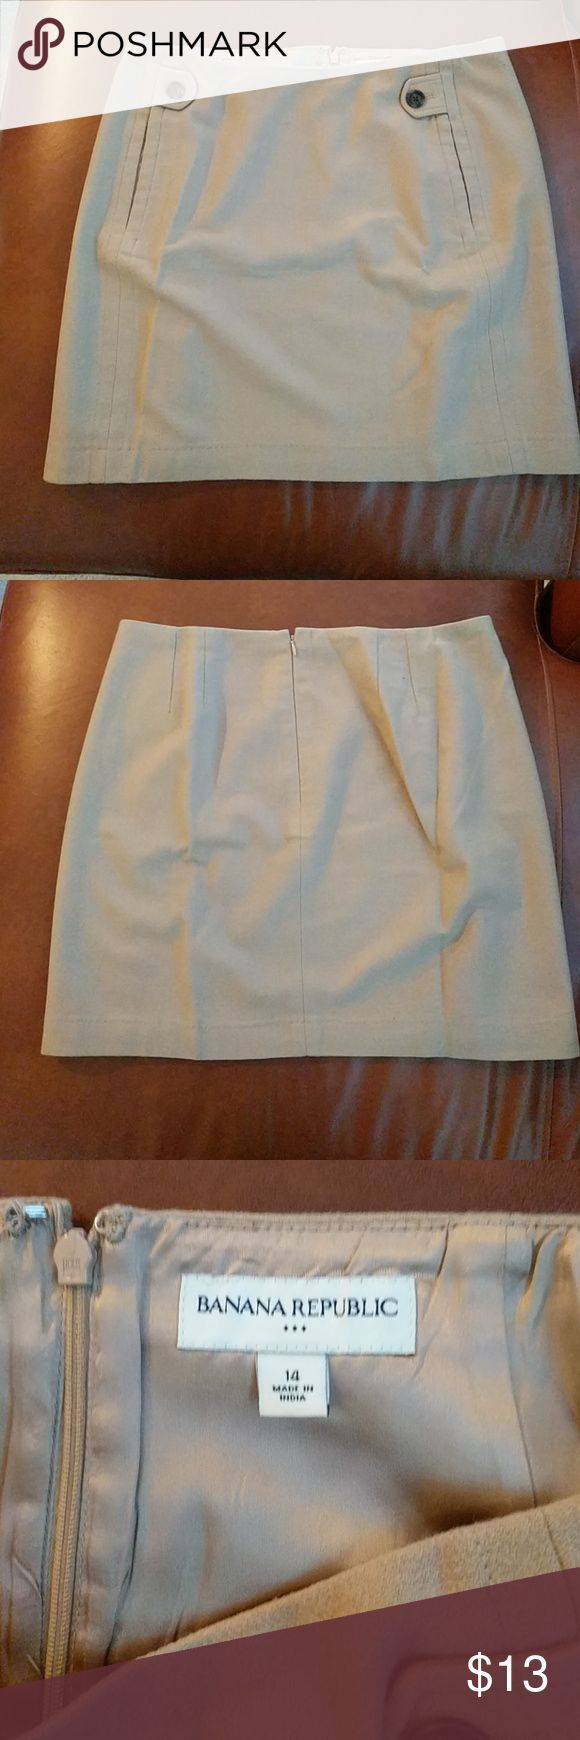 Banana Republic Ladies Skirt Size 14.  Banana Republic wool blend skirt, fully lined.  A perfect addition to your fall/winter wardrobe.  Looks cute with heels or tall boots and tights! Excellent used condition. Banana Republic Skirts